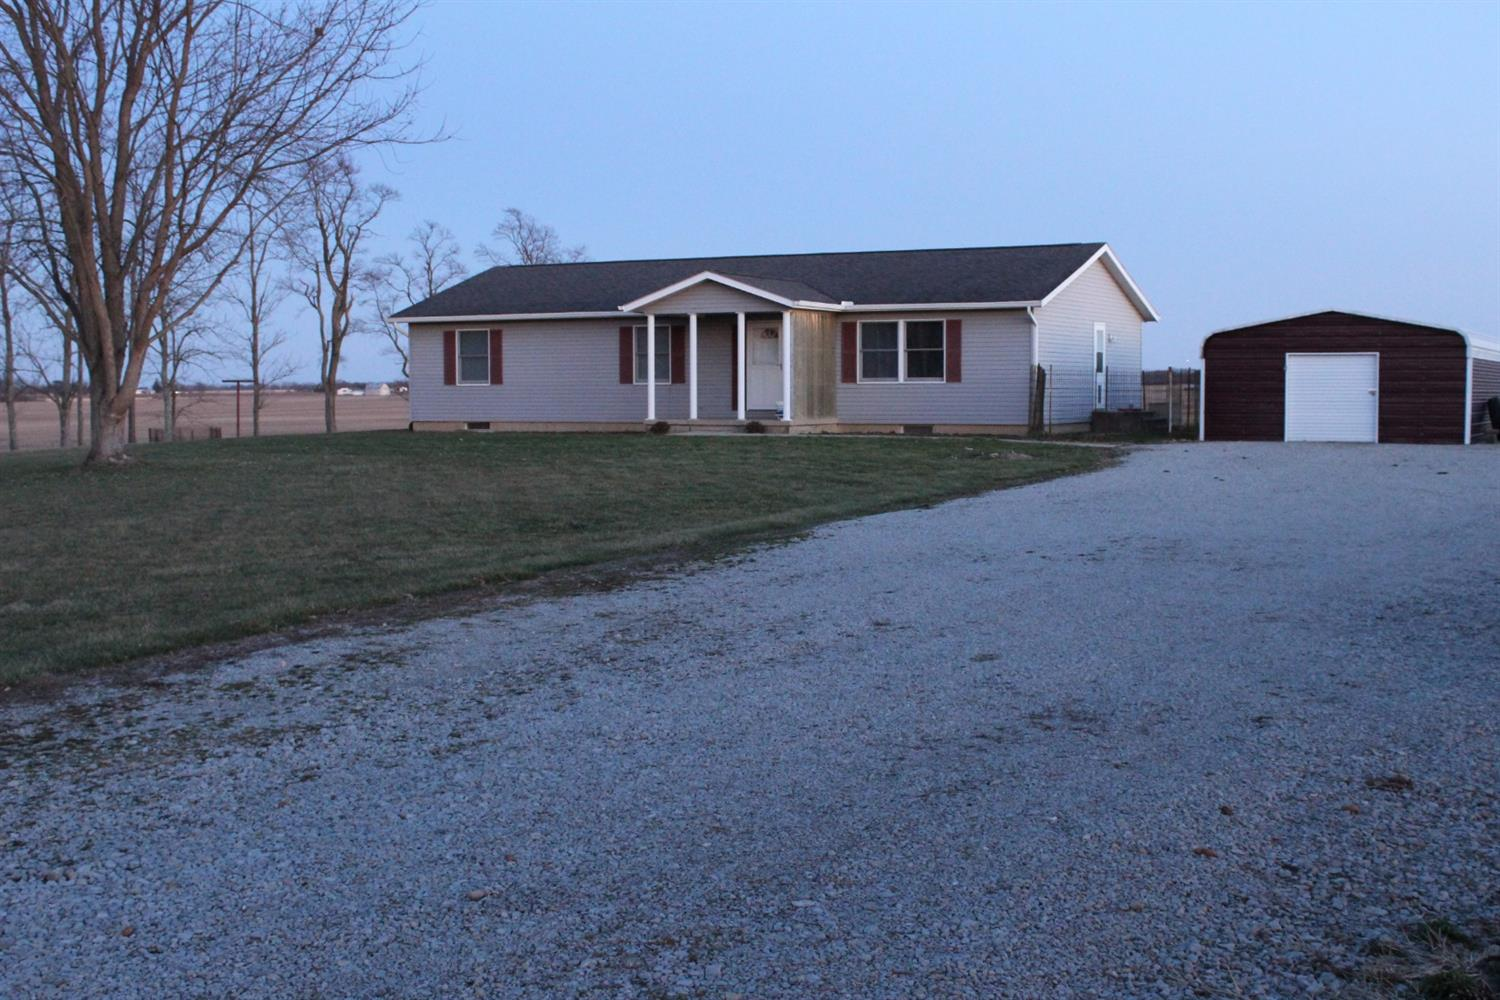 Photo 2 for 1355 Murphy Rd Green Twp. - Clinton Co., OH 45177